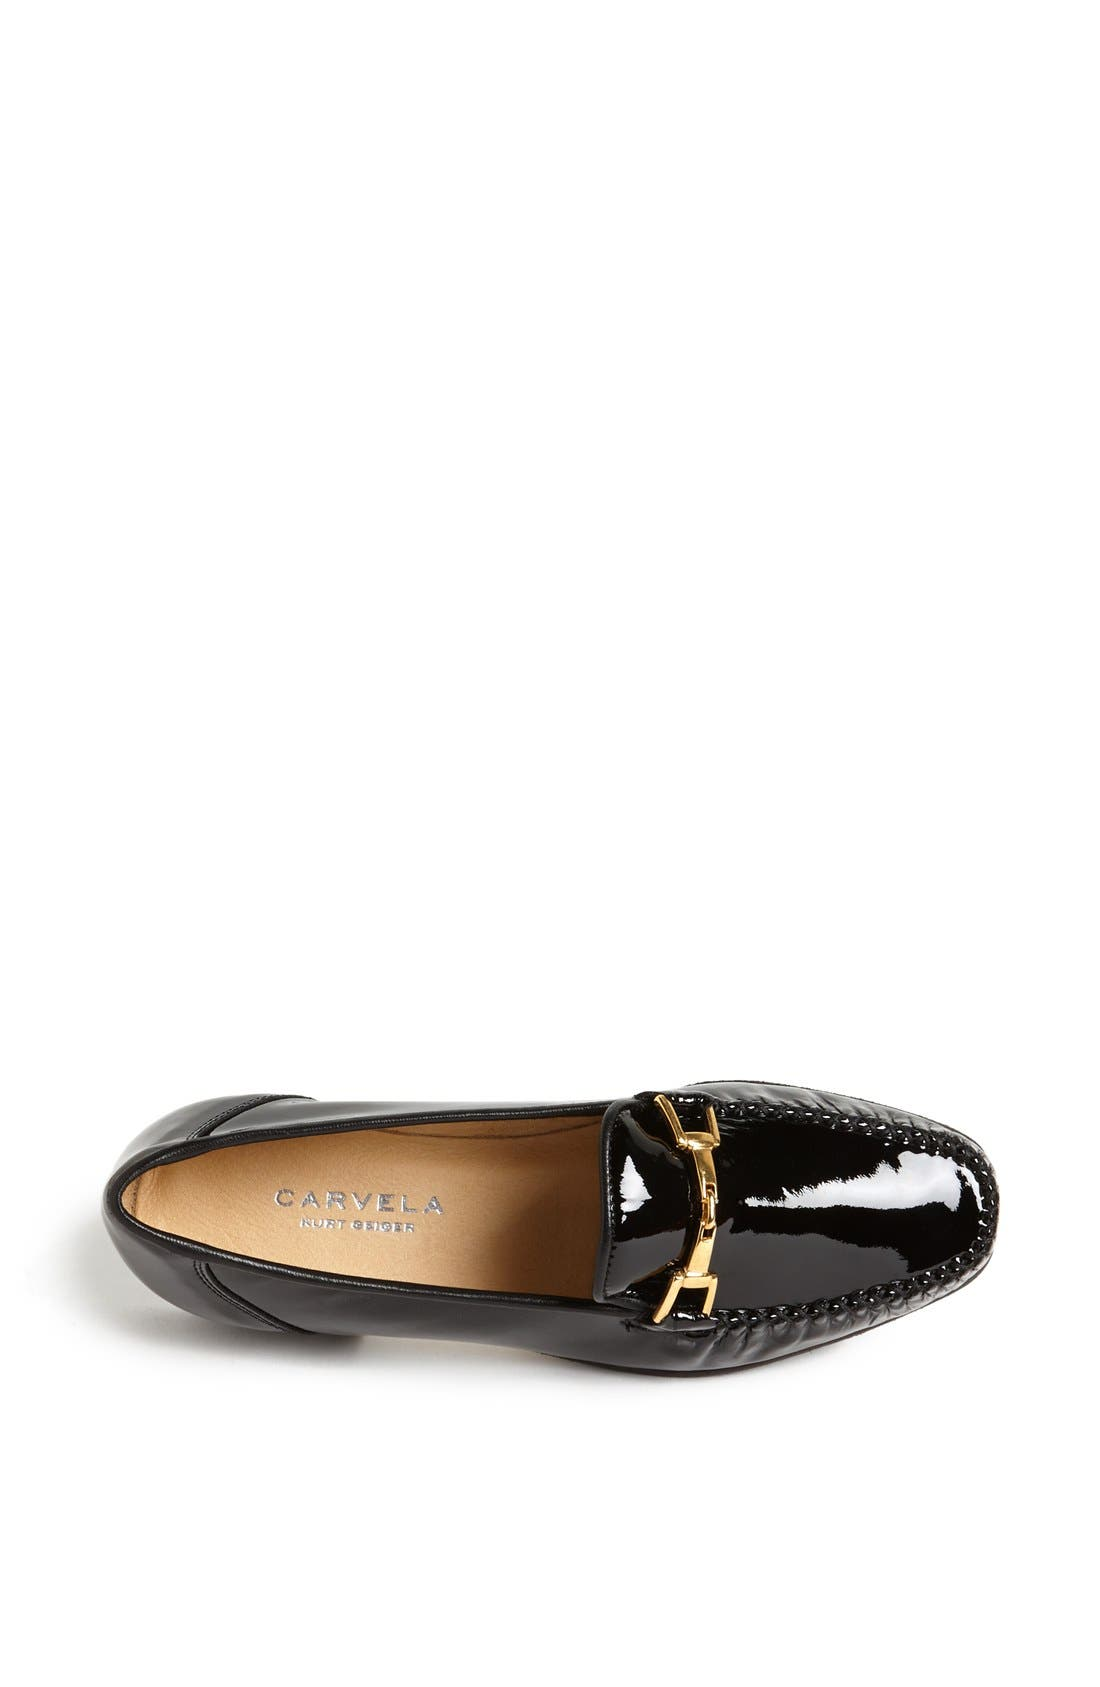 Alternate Image 3  - Carvela Kurt Geiger 'Mariner' Patent Leather Flat